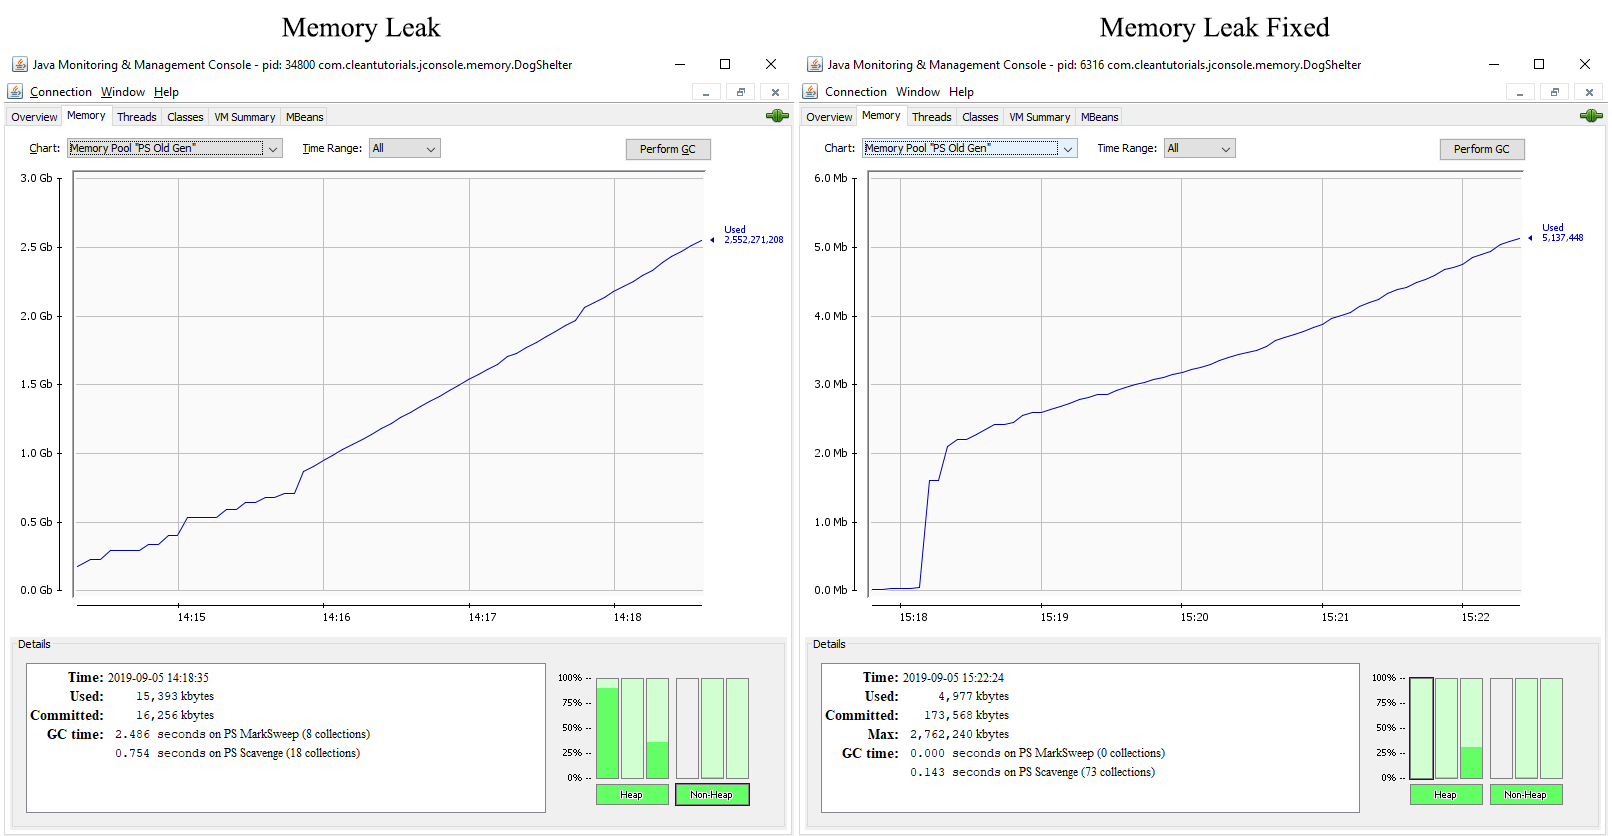 Old Gen memory chart comparison for a Java application having a memory leak and without memory leak using JConsole